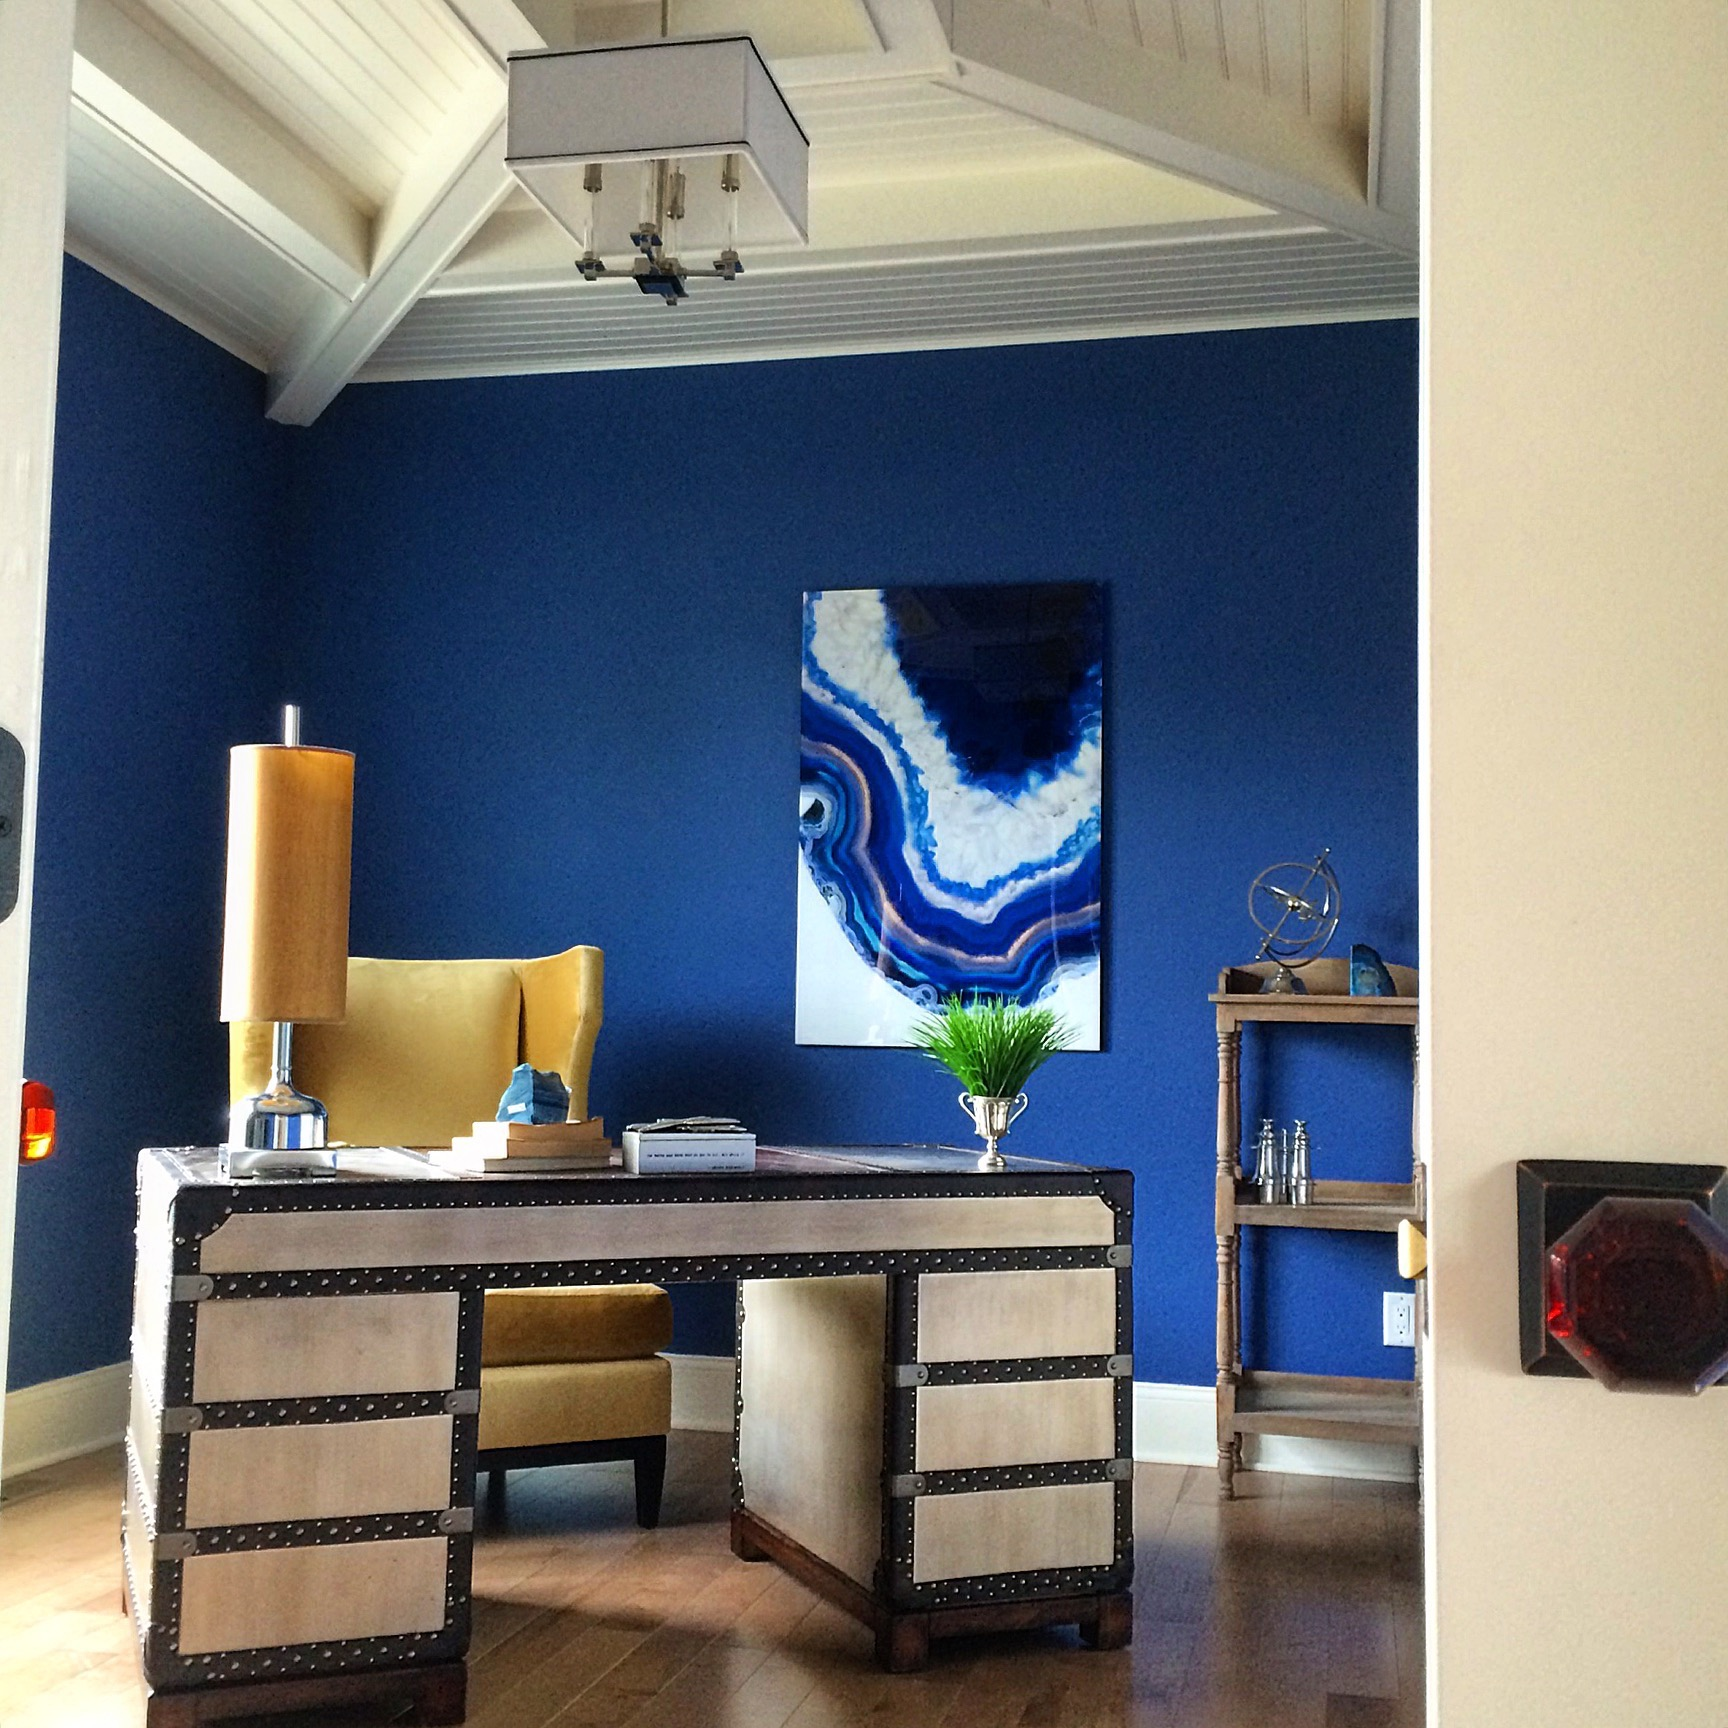 agate-art-home-office-wall-decor-navy-sherwin-williams-indigo-batik-7602